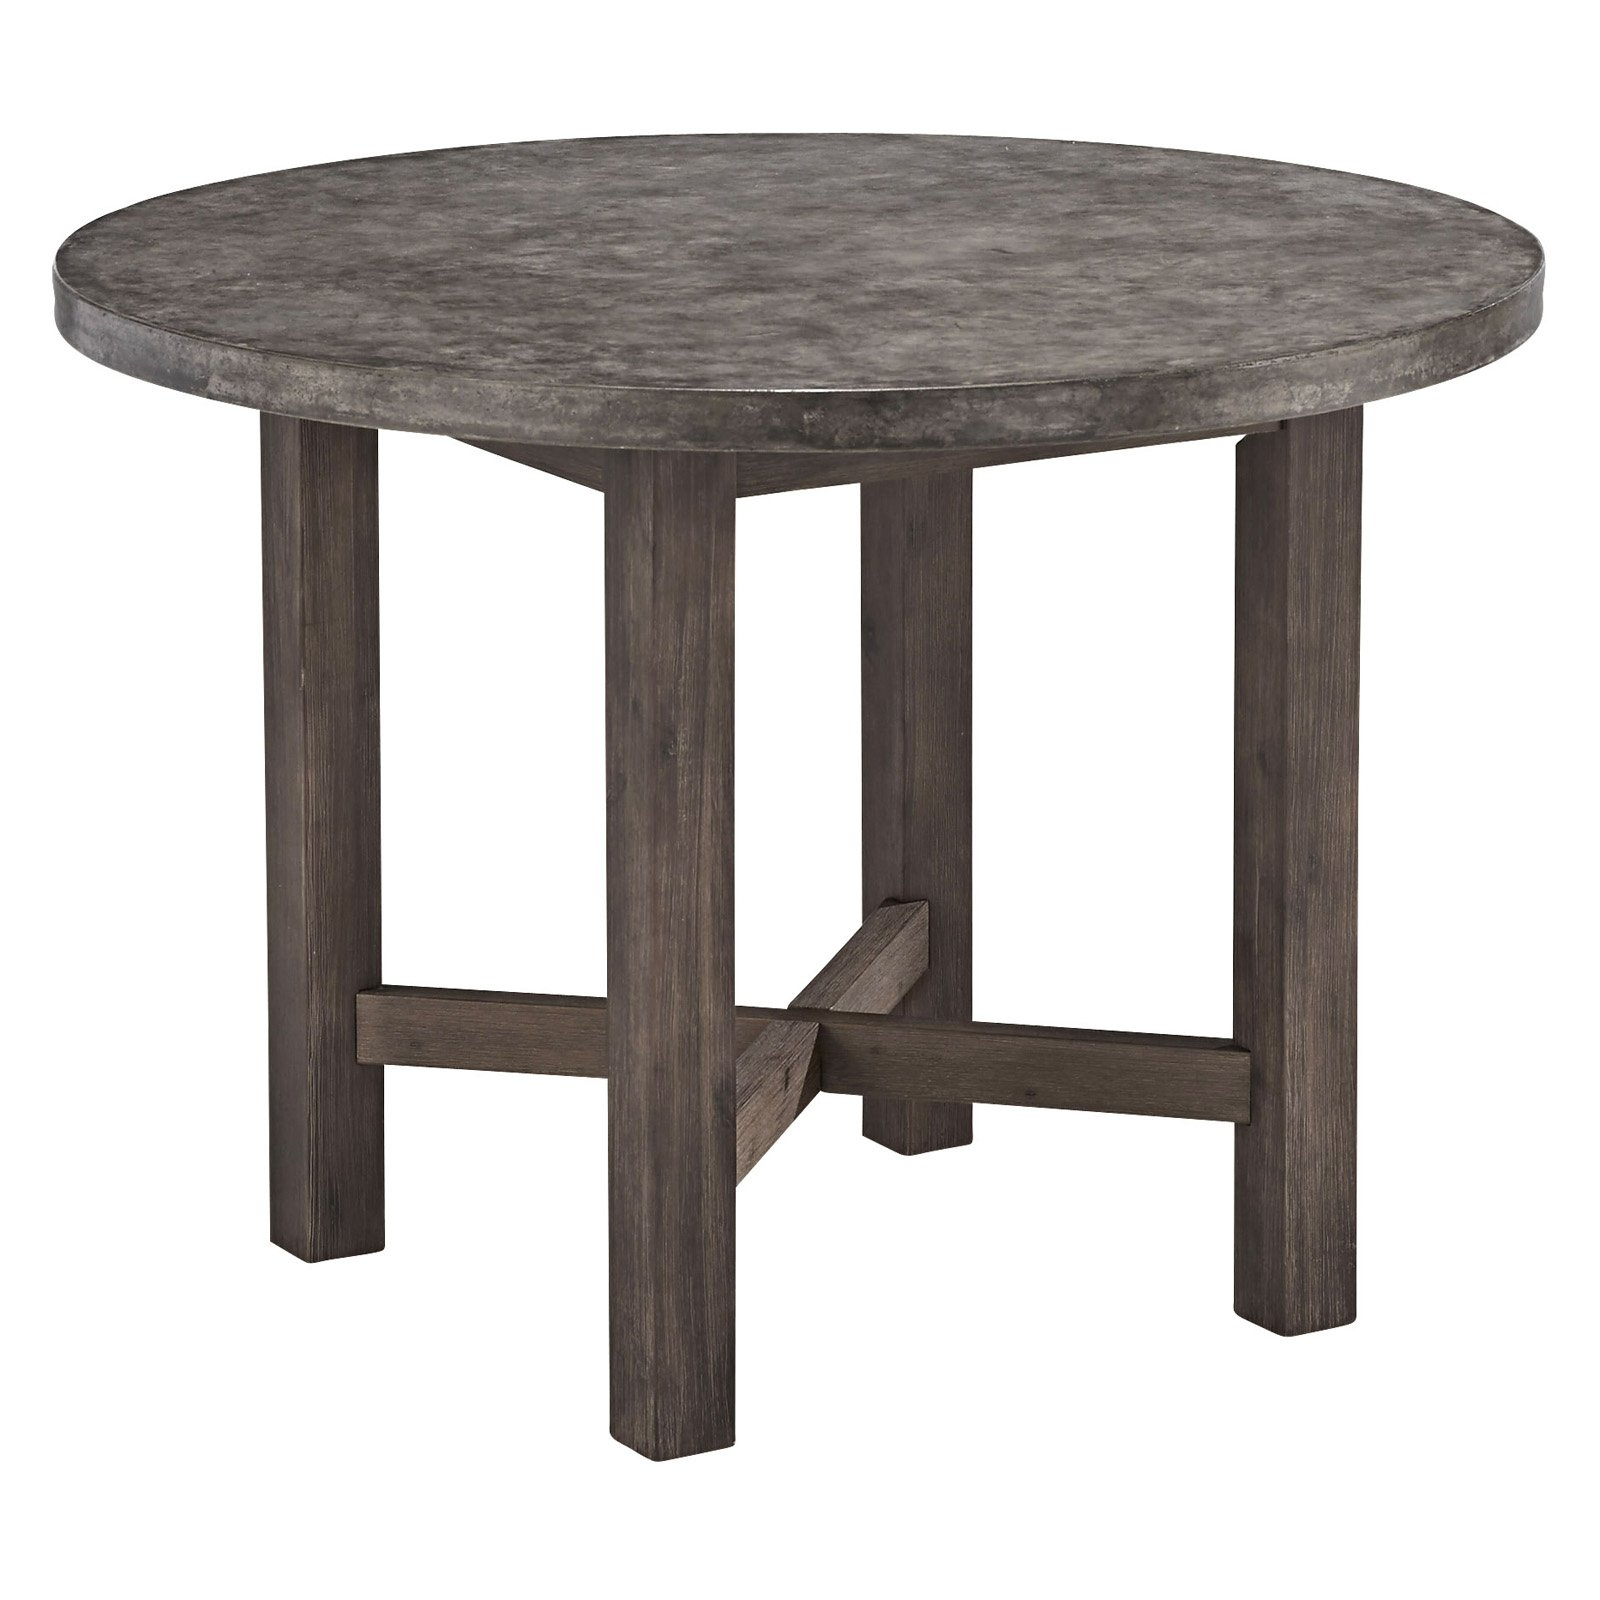 Favorite Circle Dining Tables Regarding Concrete Chic Round Dining Table – Walmart (View 15 of 25)